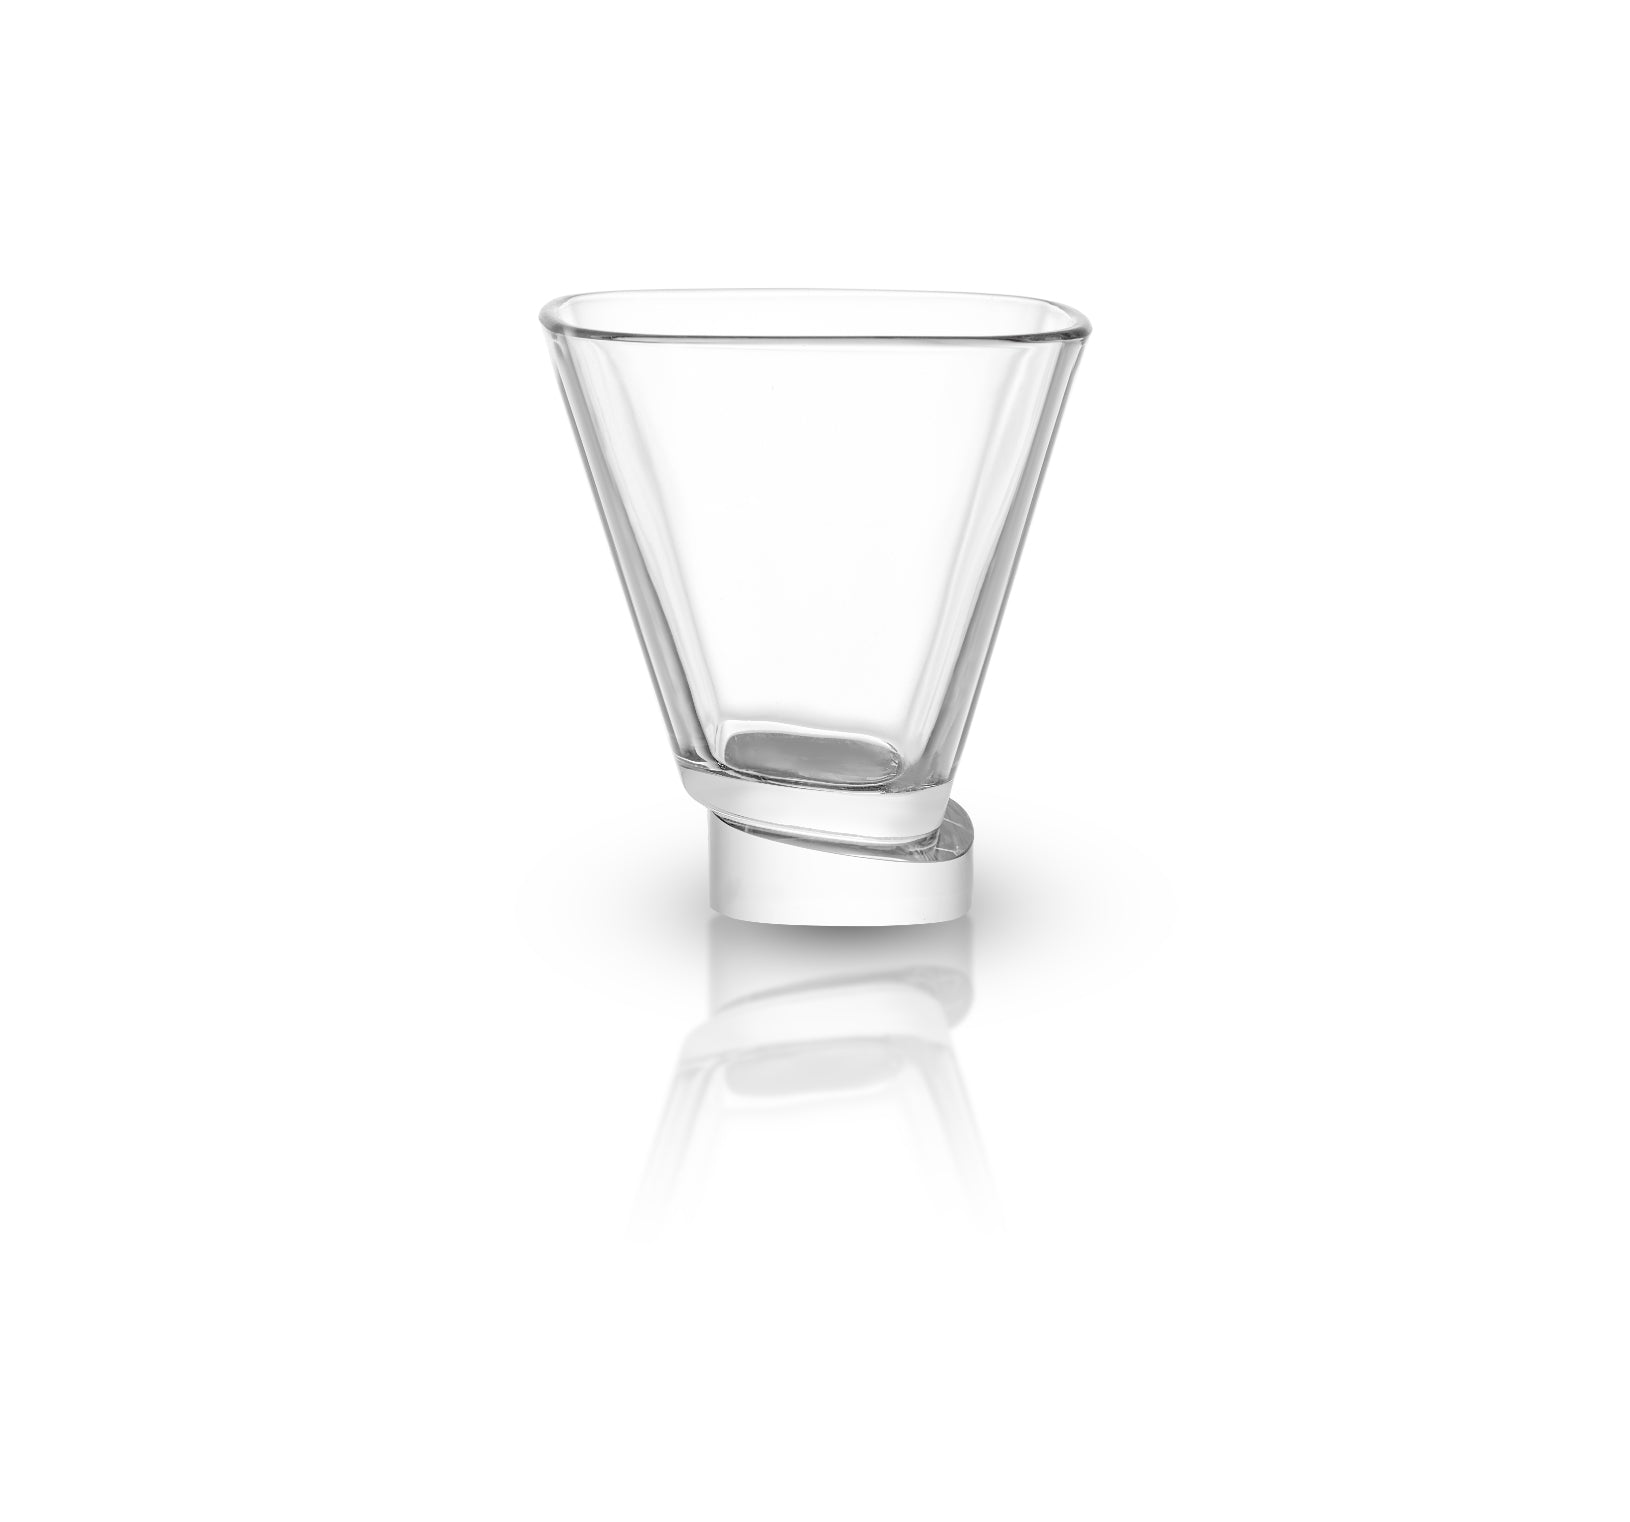 Aqua Vitae Square Crystal Martini Glasses